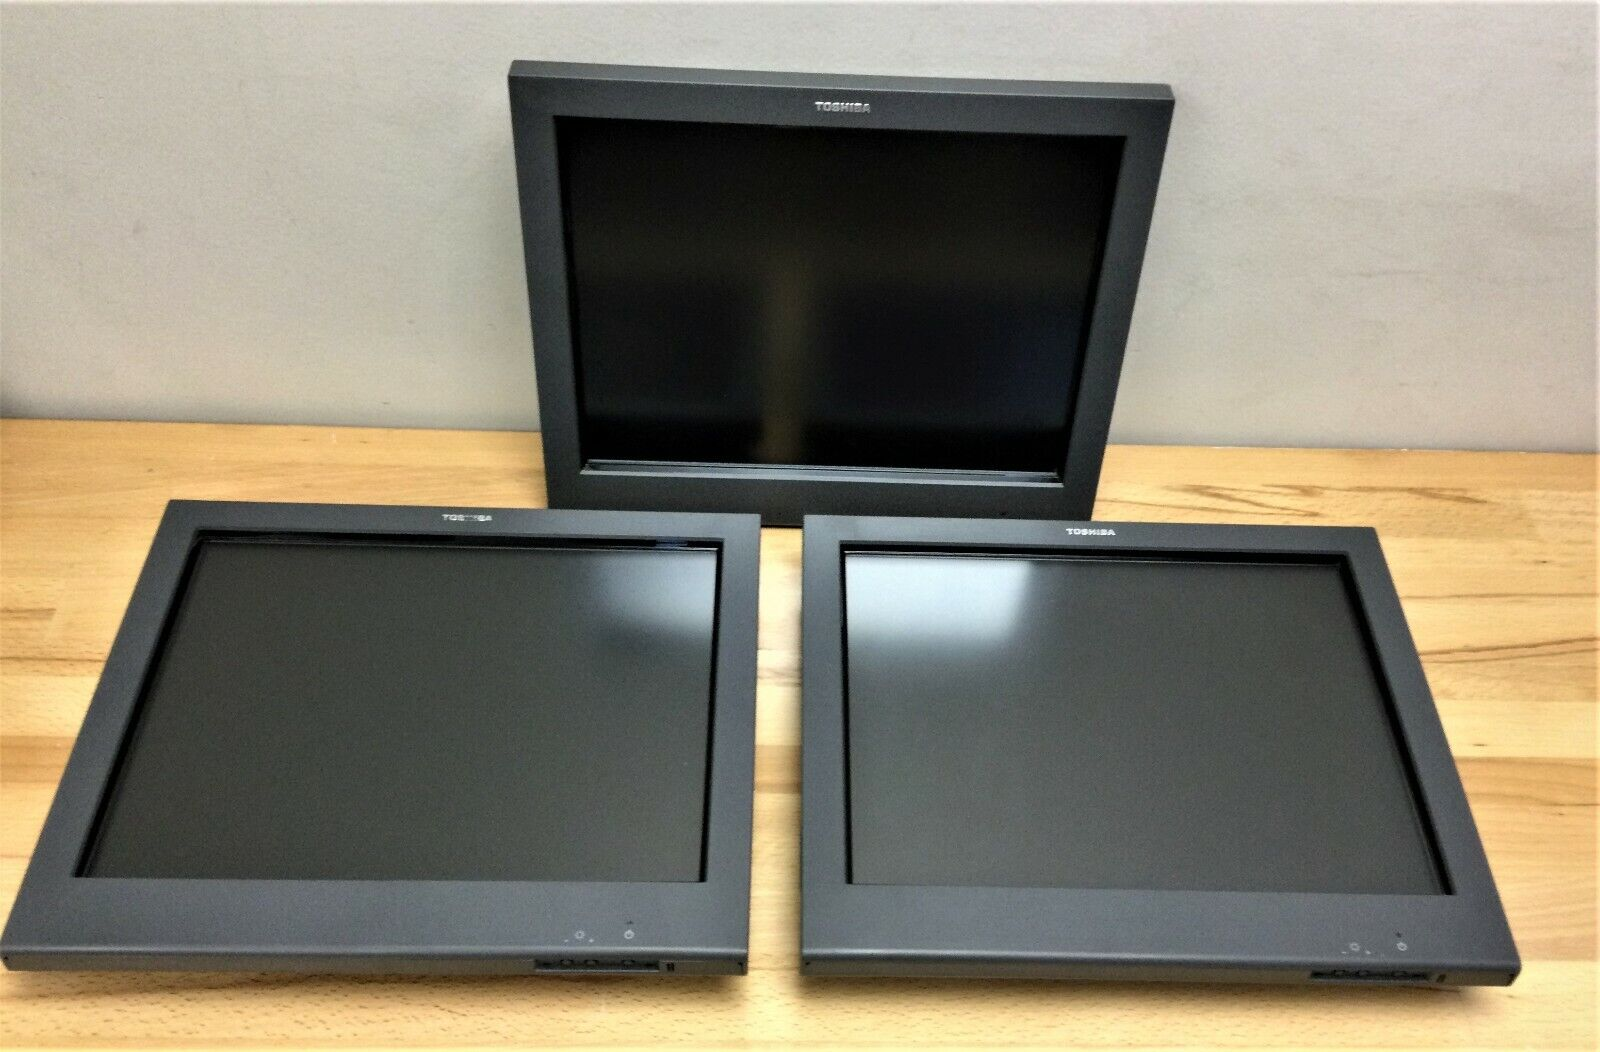 LOT OF 3 - Toshiba SurePoint 4820-5LG 15 Touch Screen Display 7430932 REFURB  - $110.00